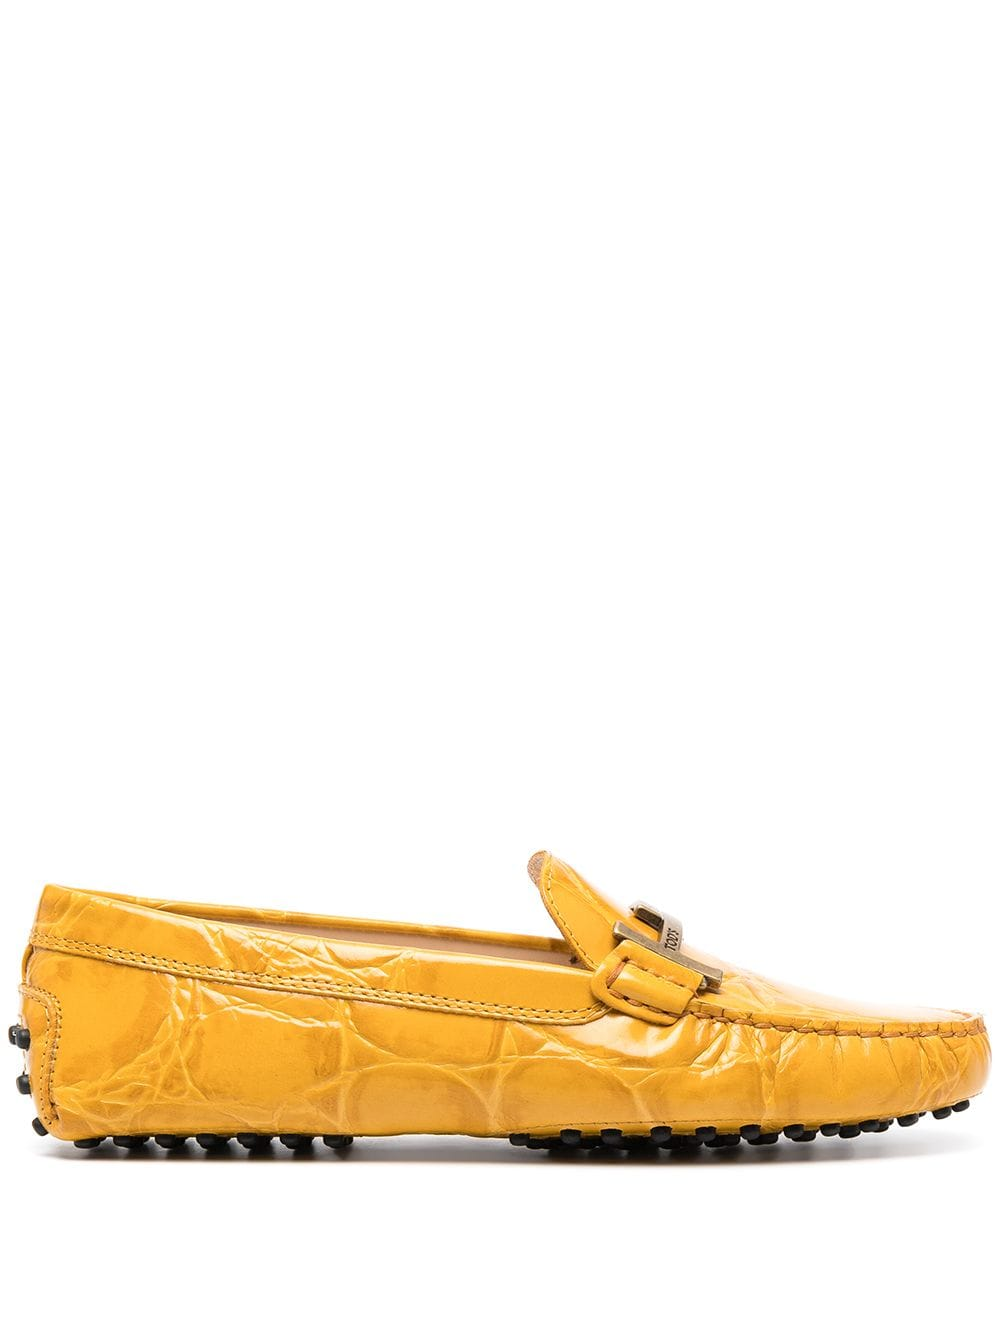 Tod's City Gommino leather loafers - Yellow von Tod's